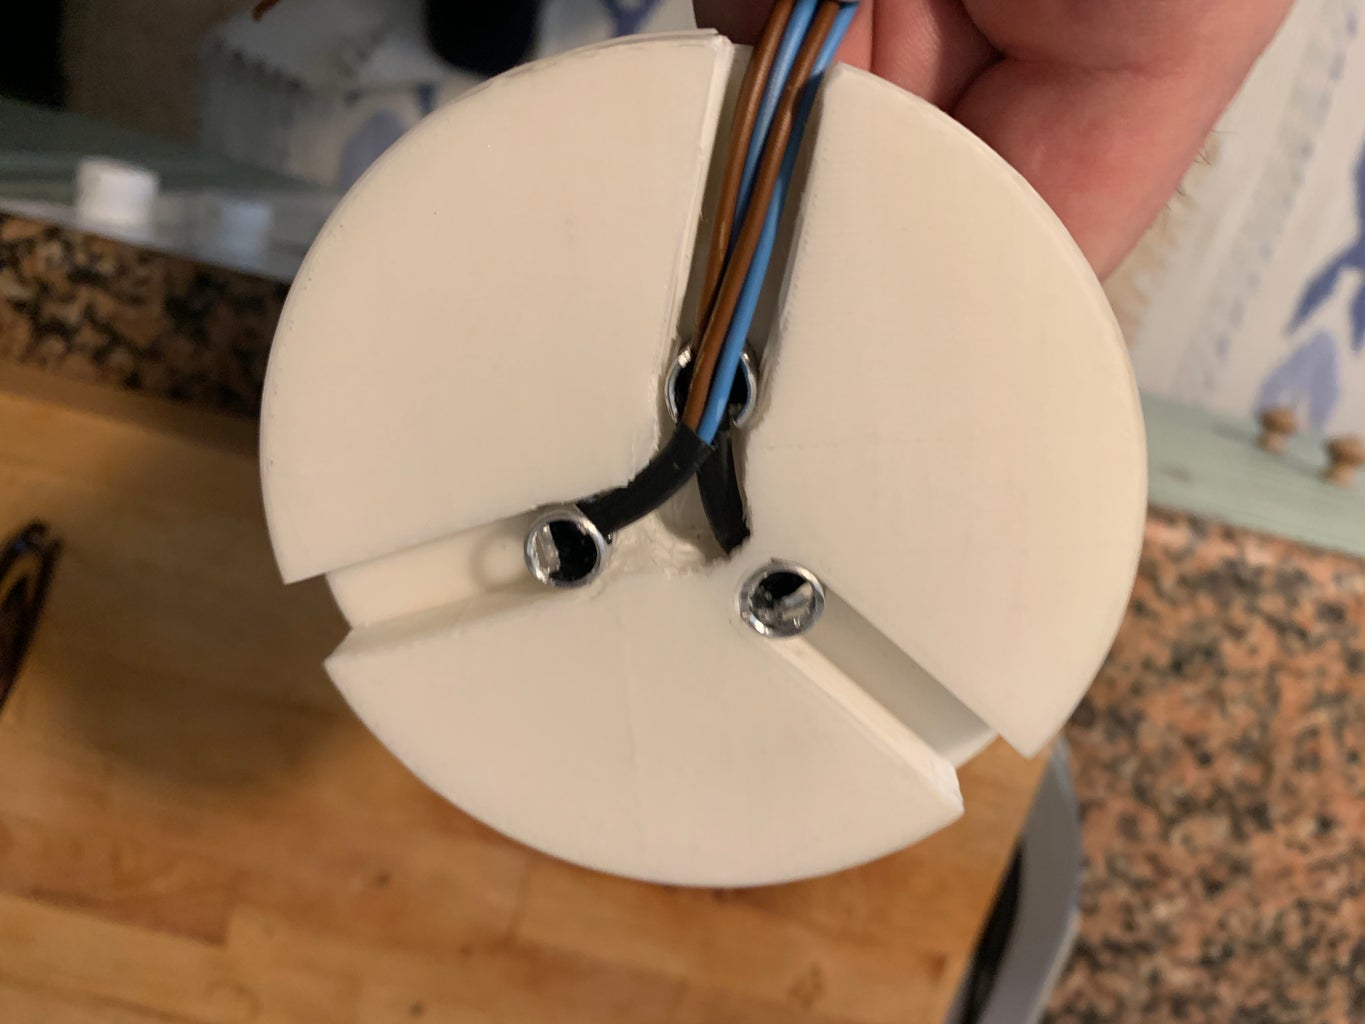 Wiring the Base